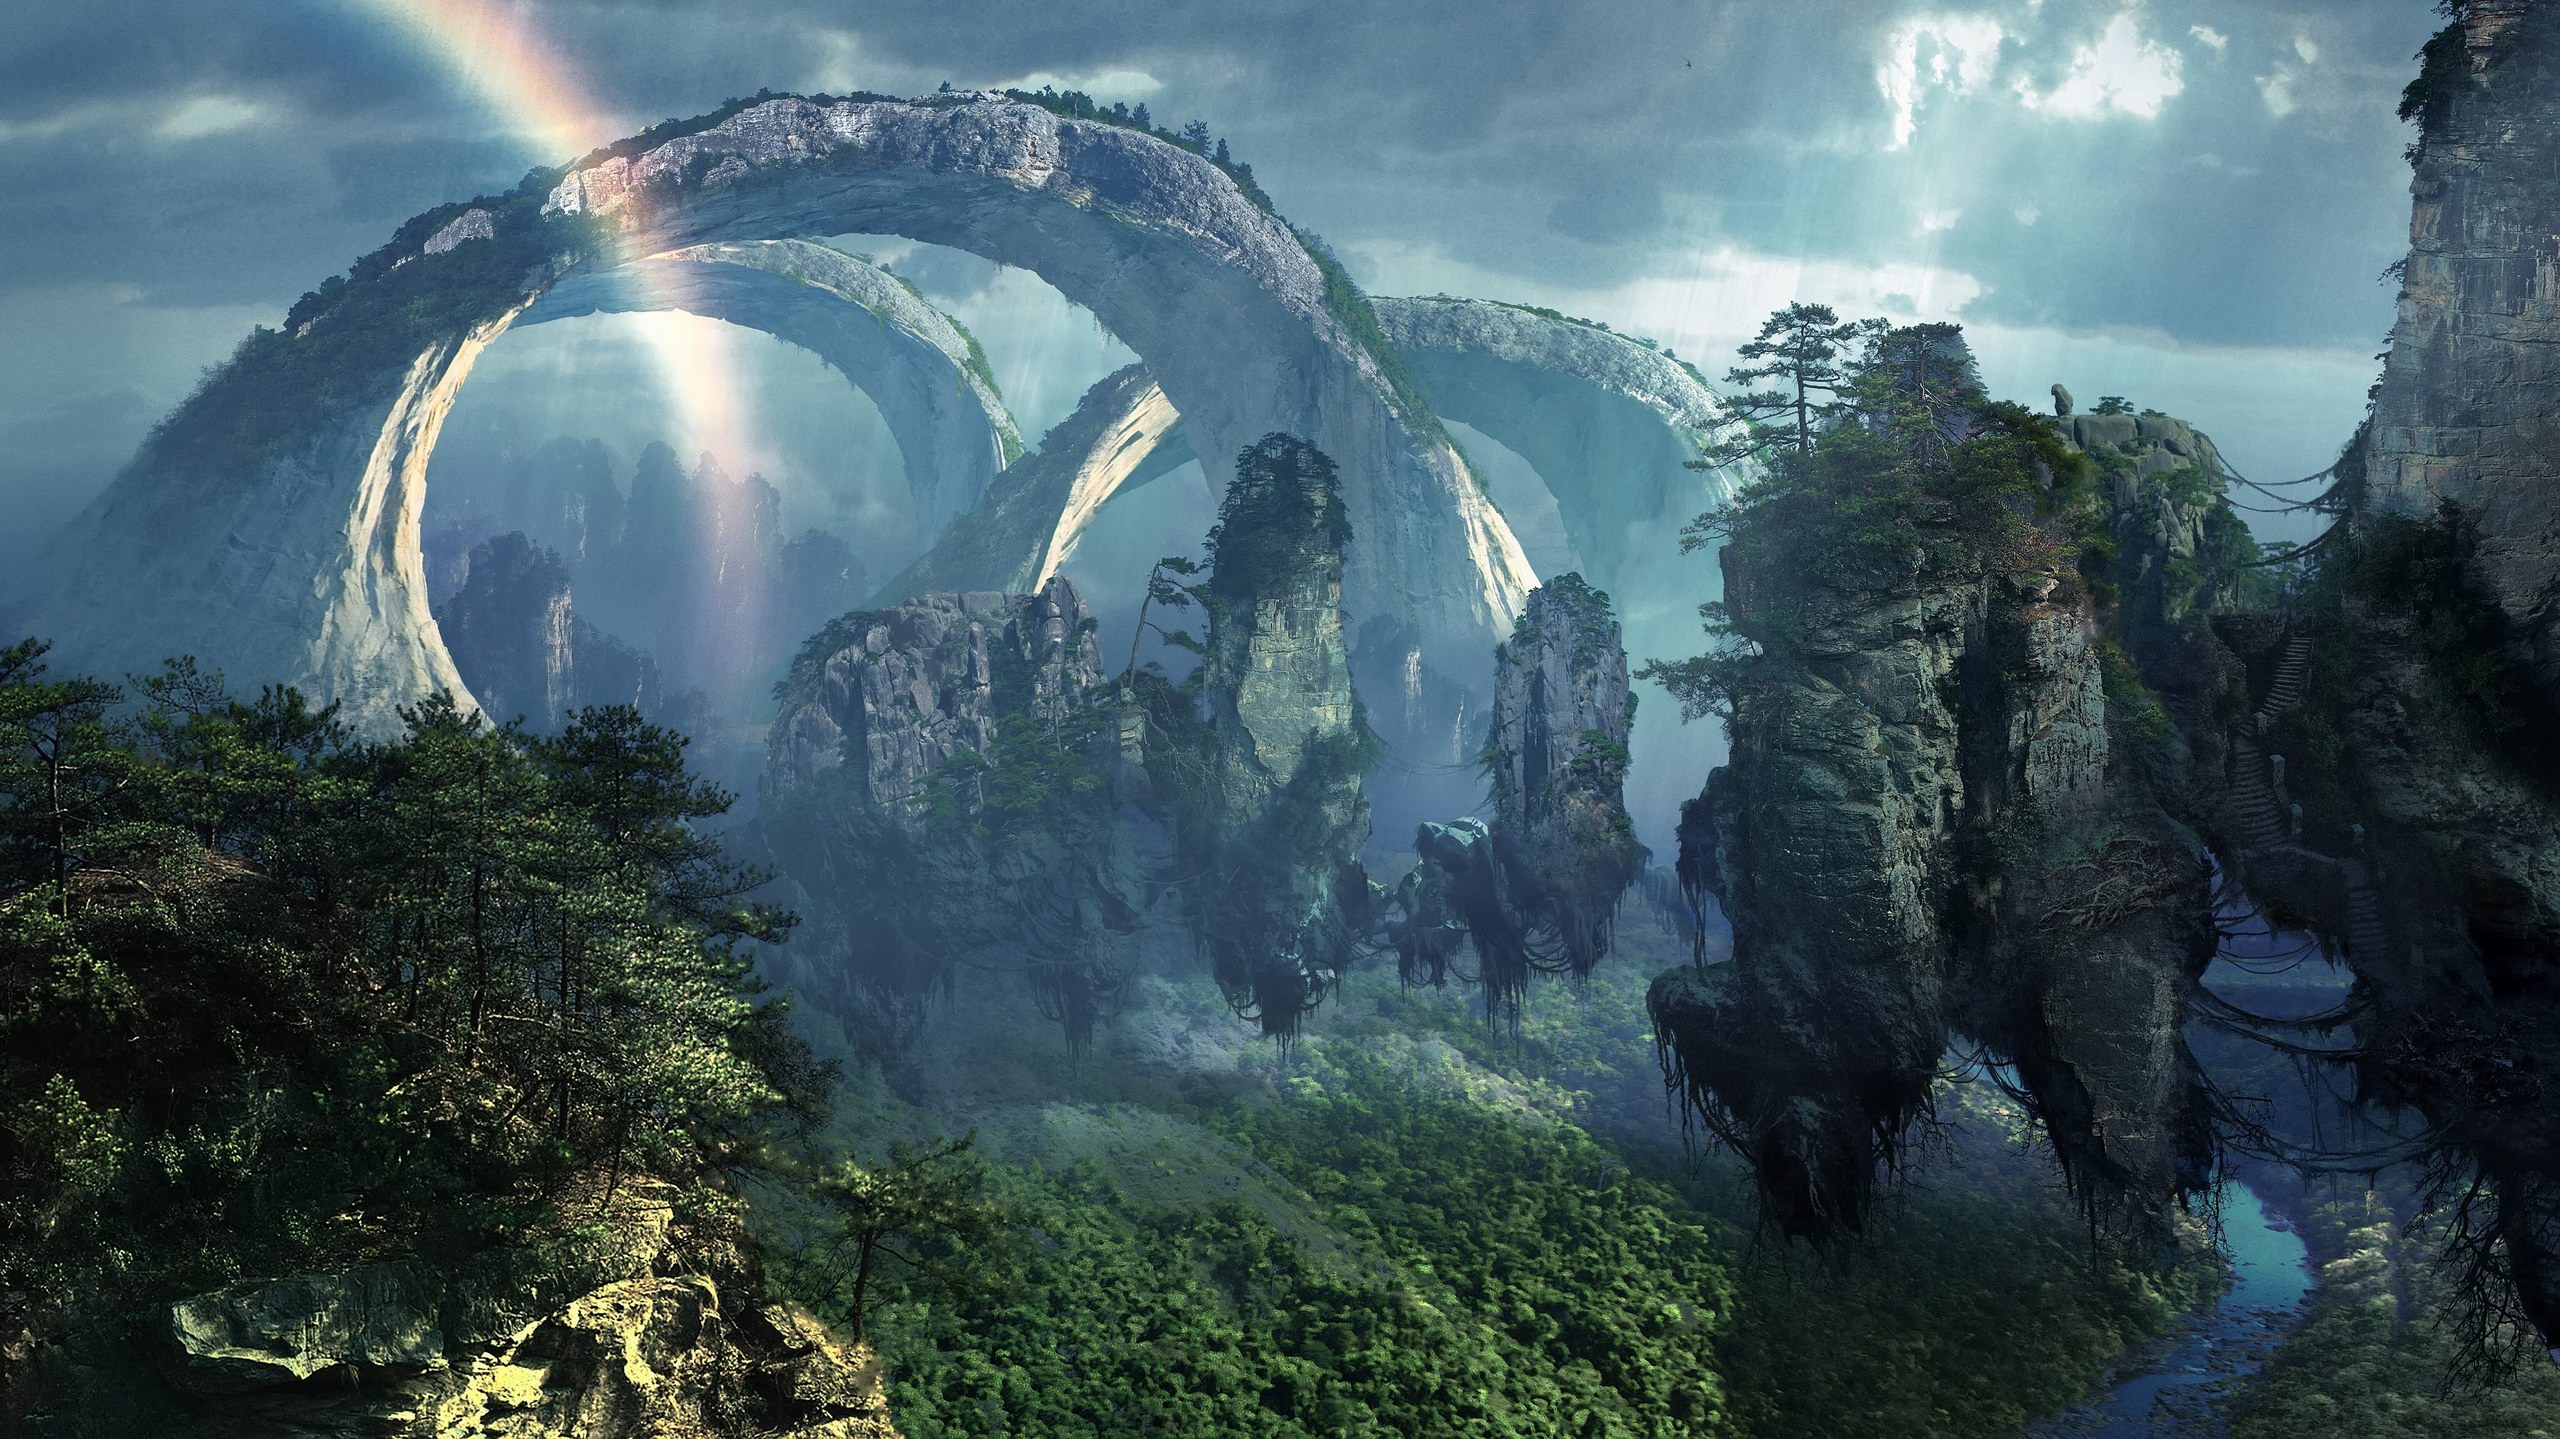 avatar-pandora-stones-mountains-flying-islands-jungle.jpg